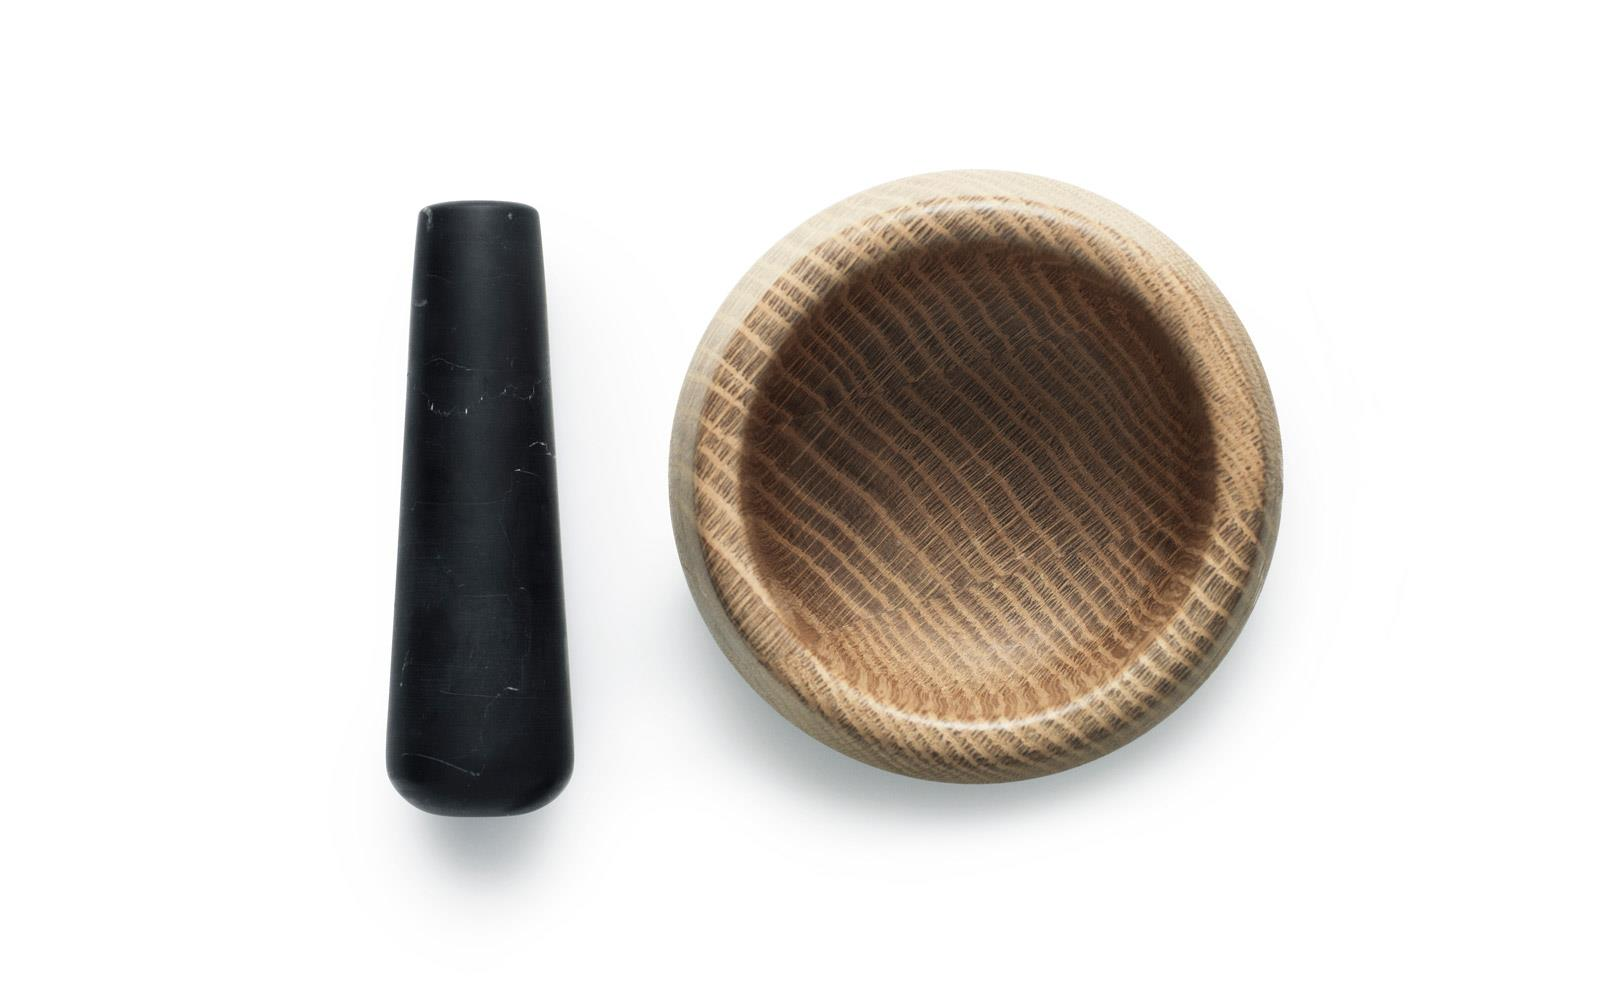 Craft Mortar  Pestle2